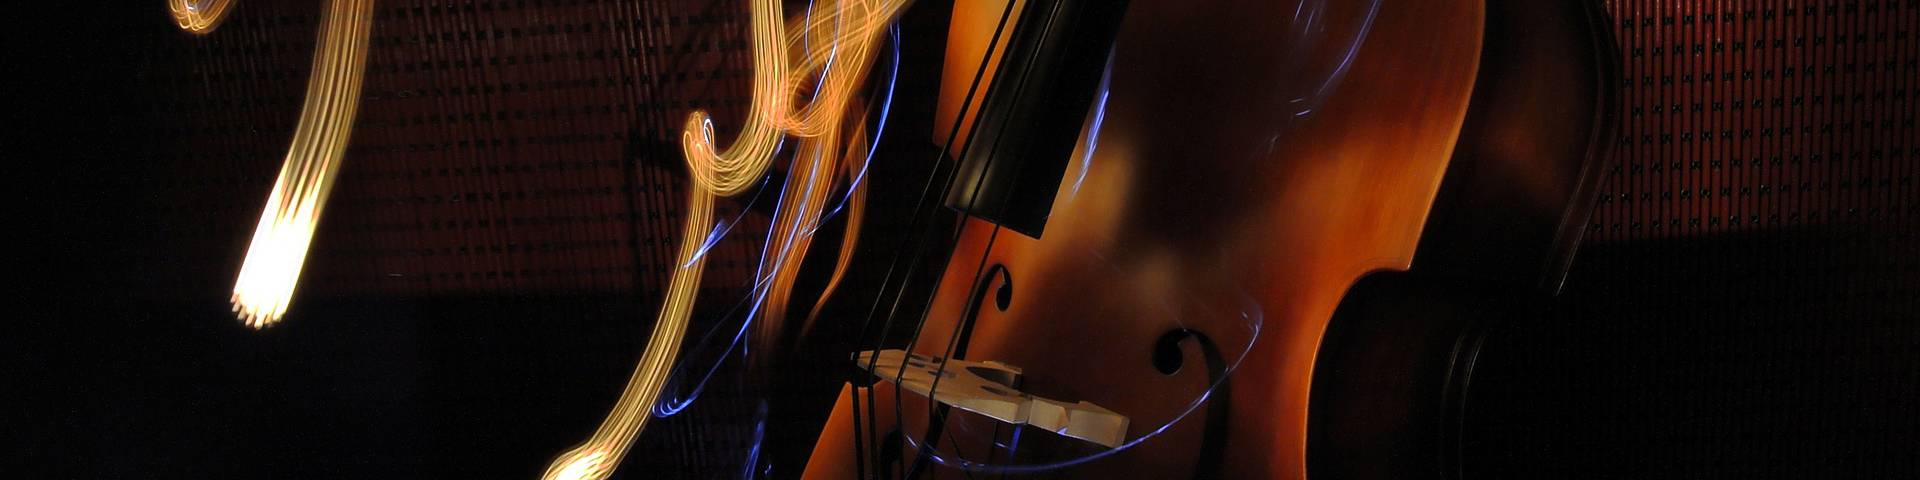 A upright bass guitar